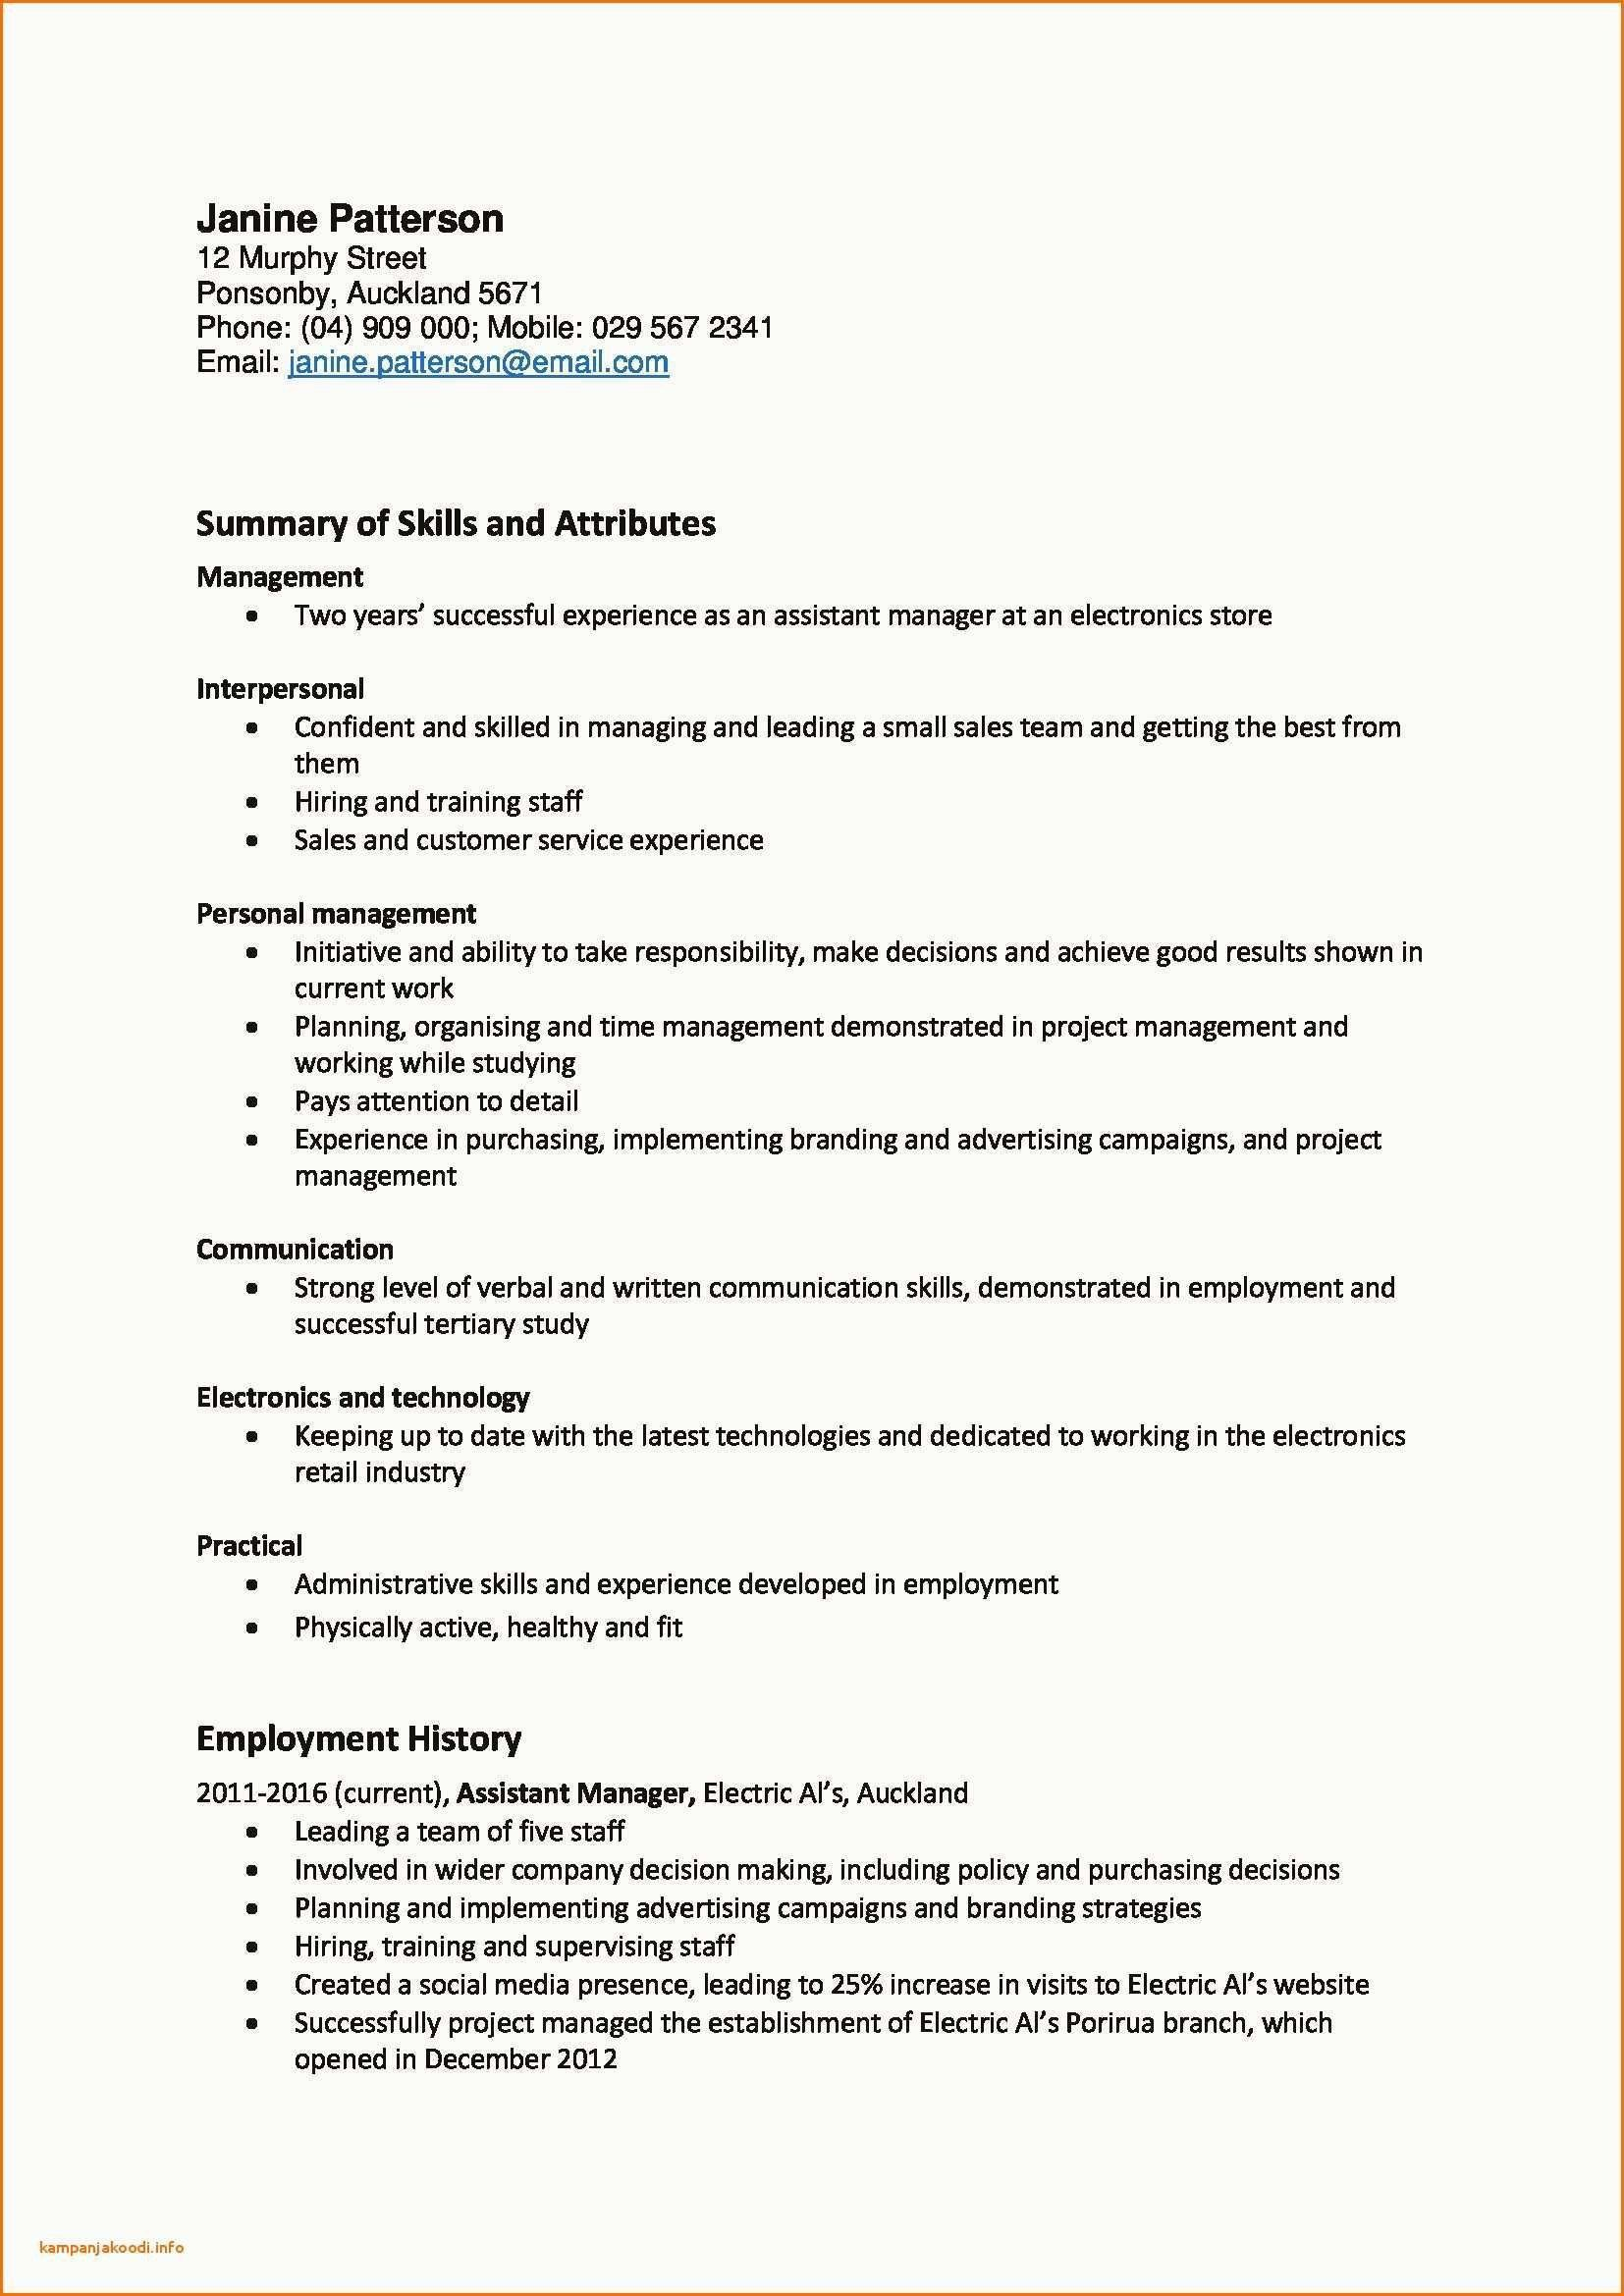 Should A Cover Letter Be Printed On Resume Paper from i.pinimg.com